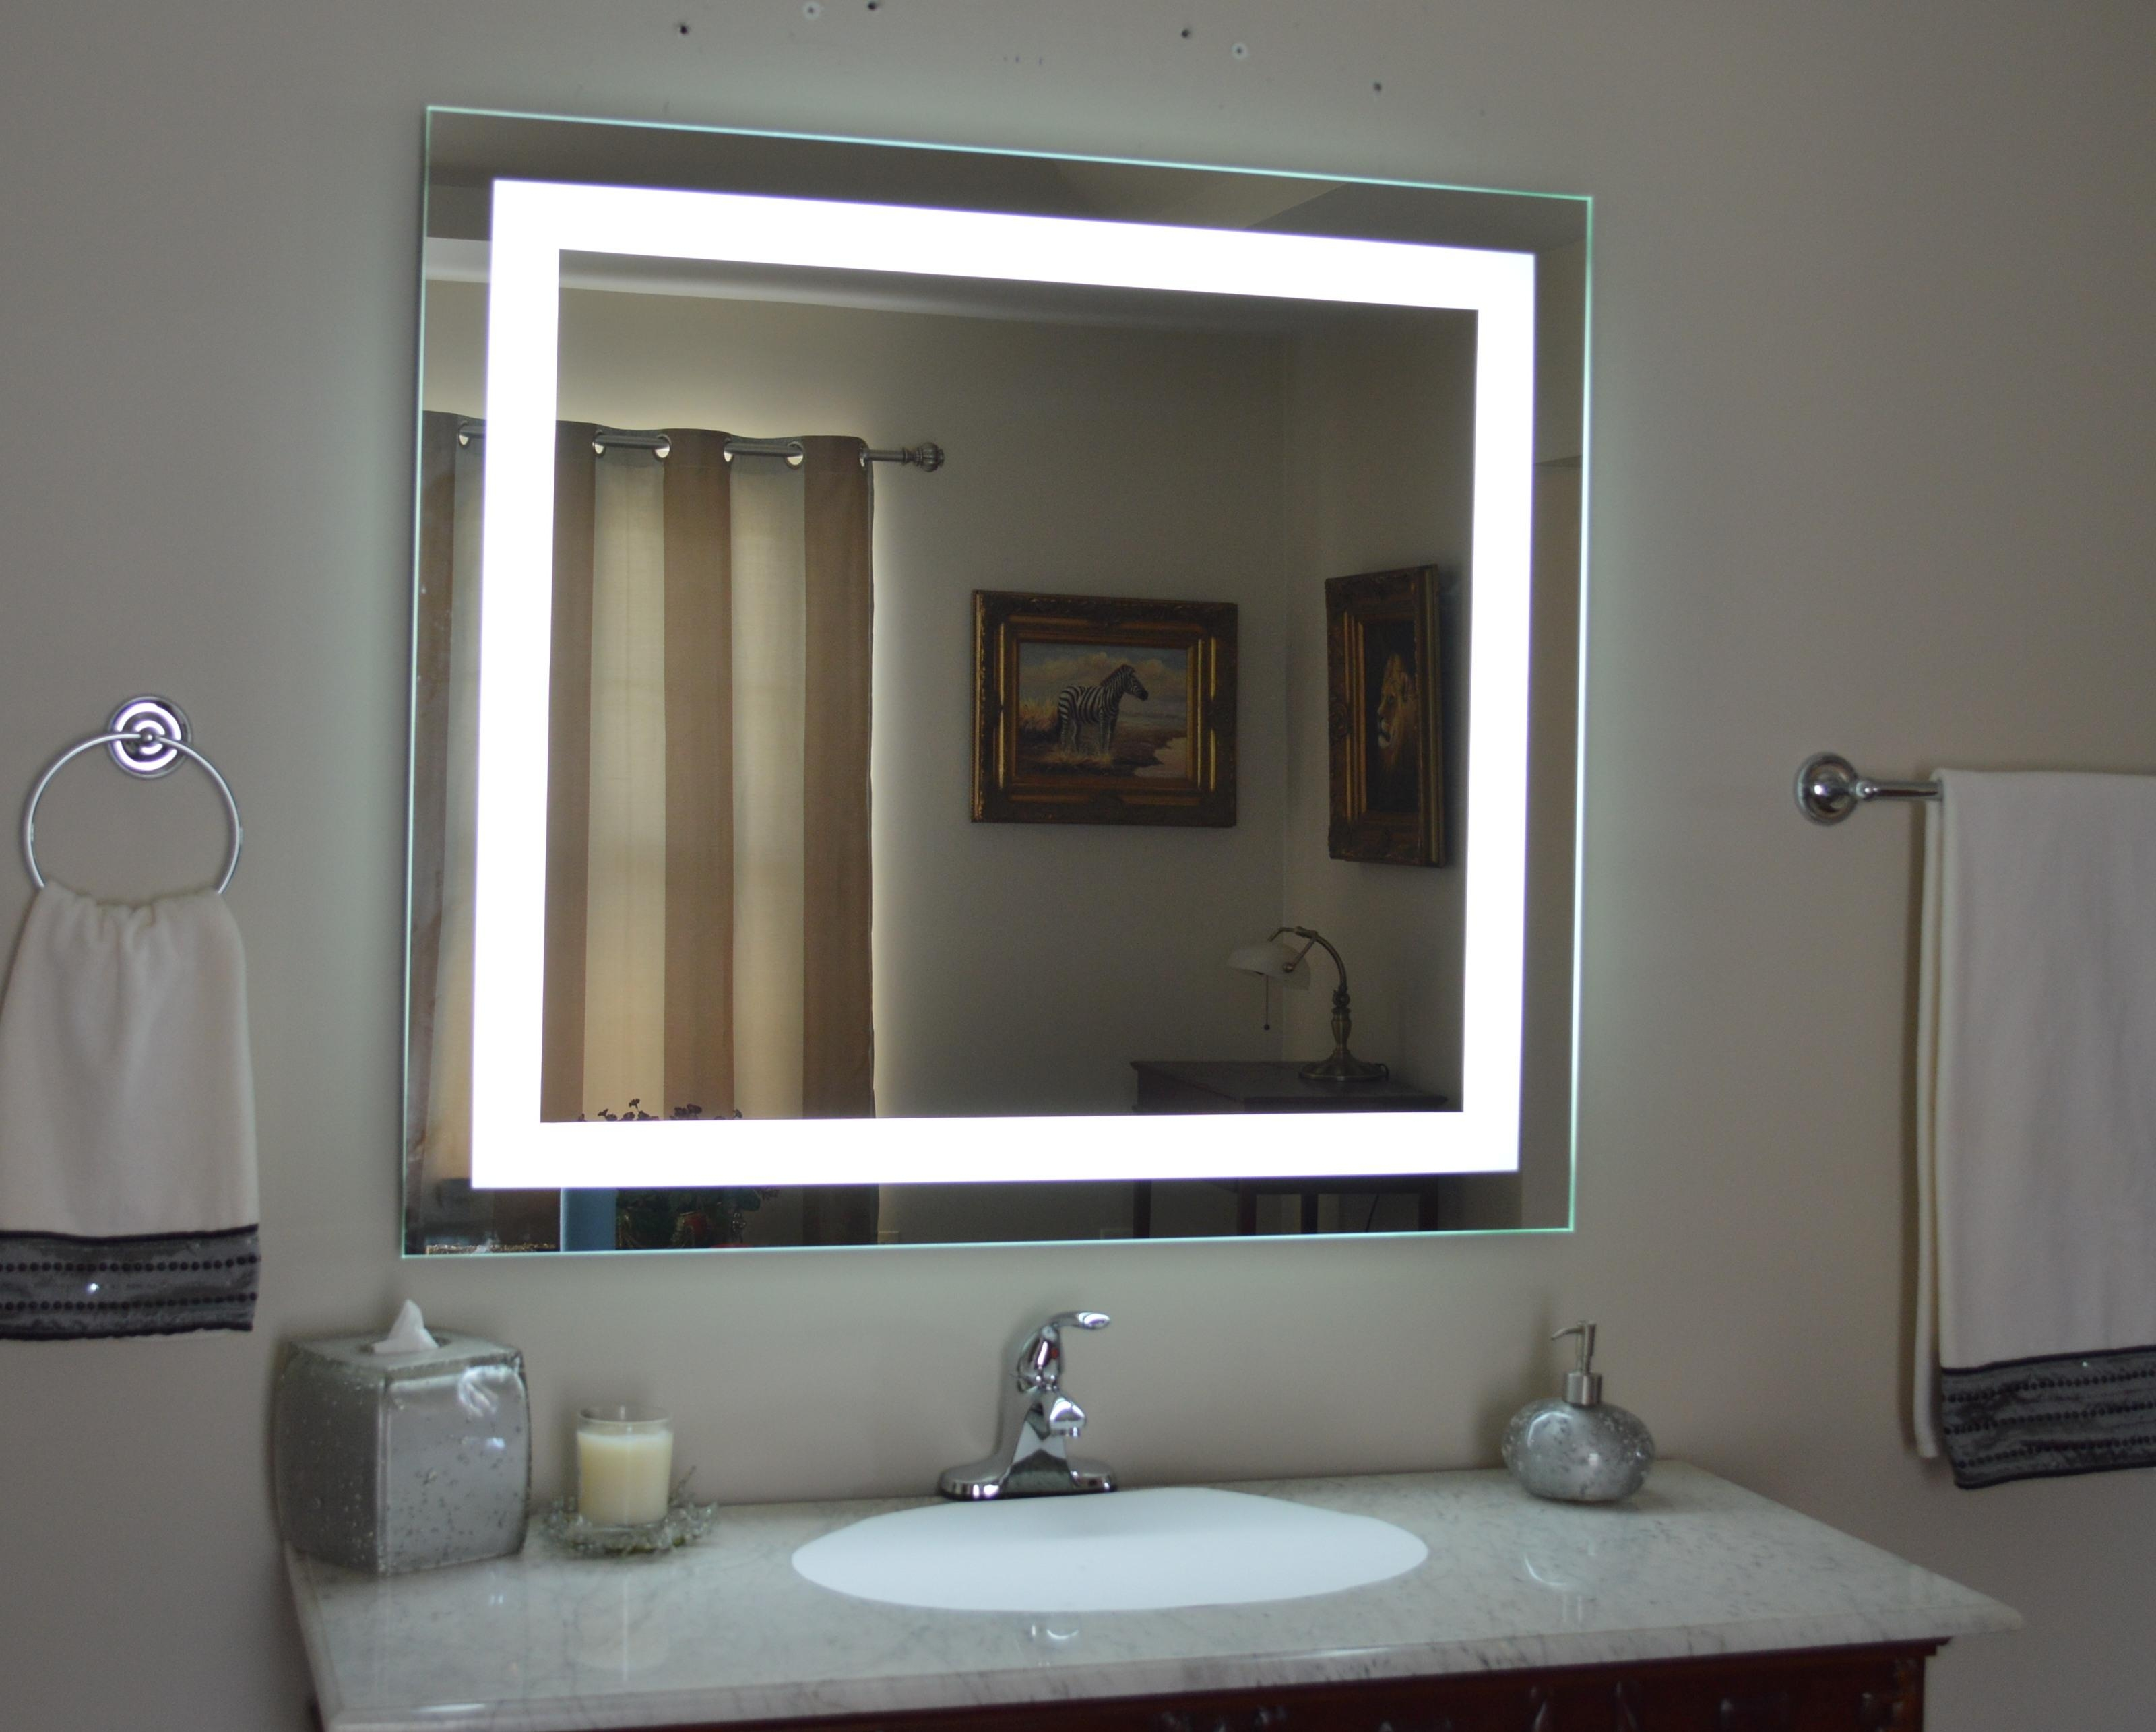 Lighted Vanity Mirror In Lighted Vanity Mirrors For Bathroom (Image 13 of 20)